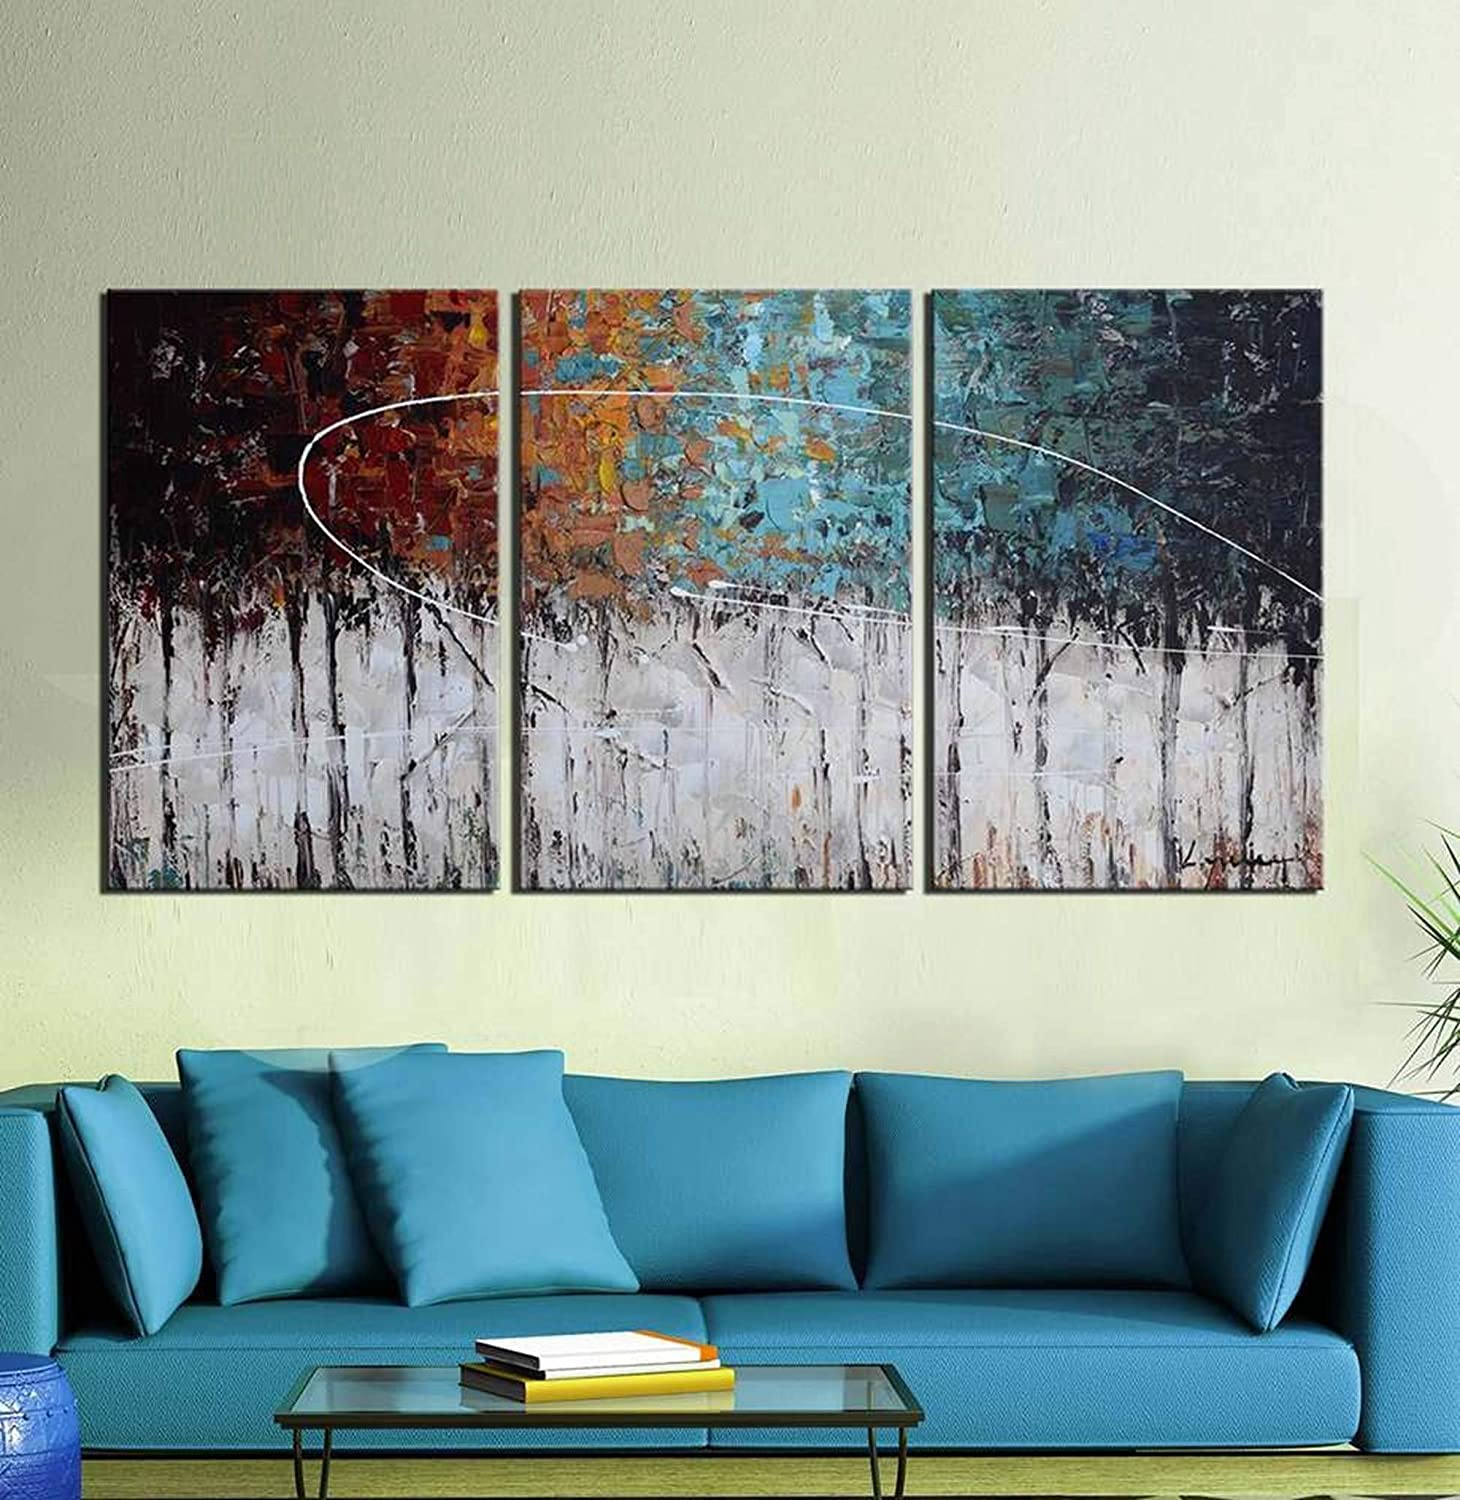 Amazon com artland hand painted color forest 3 piece gallery wrapped abstract oil painting on canvas wall art decor home decoration 36x72 inches paintings